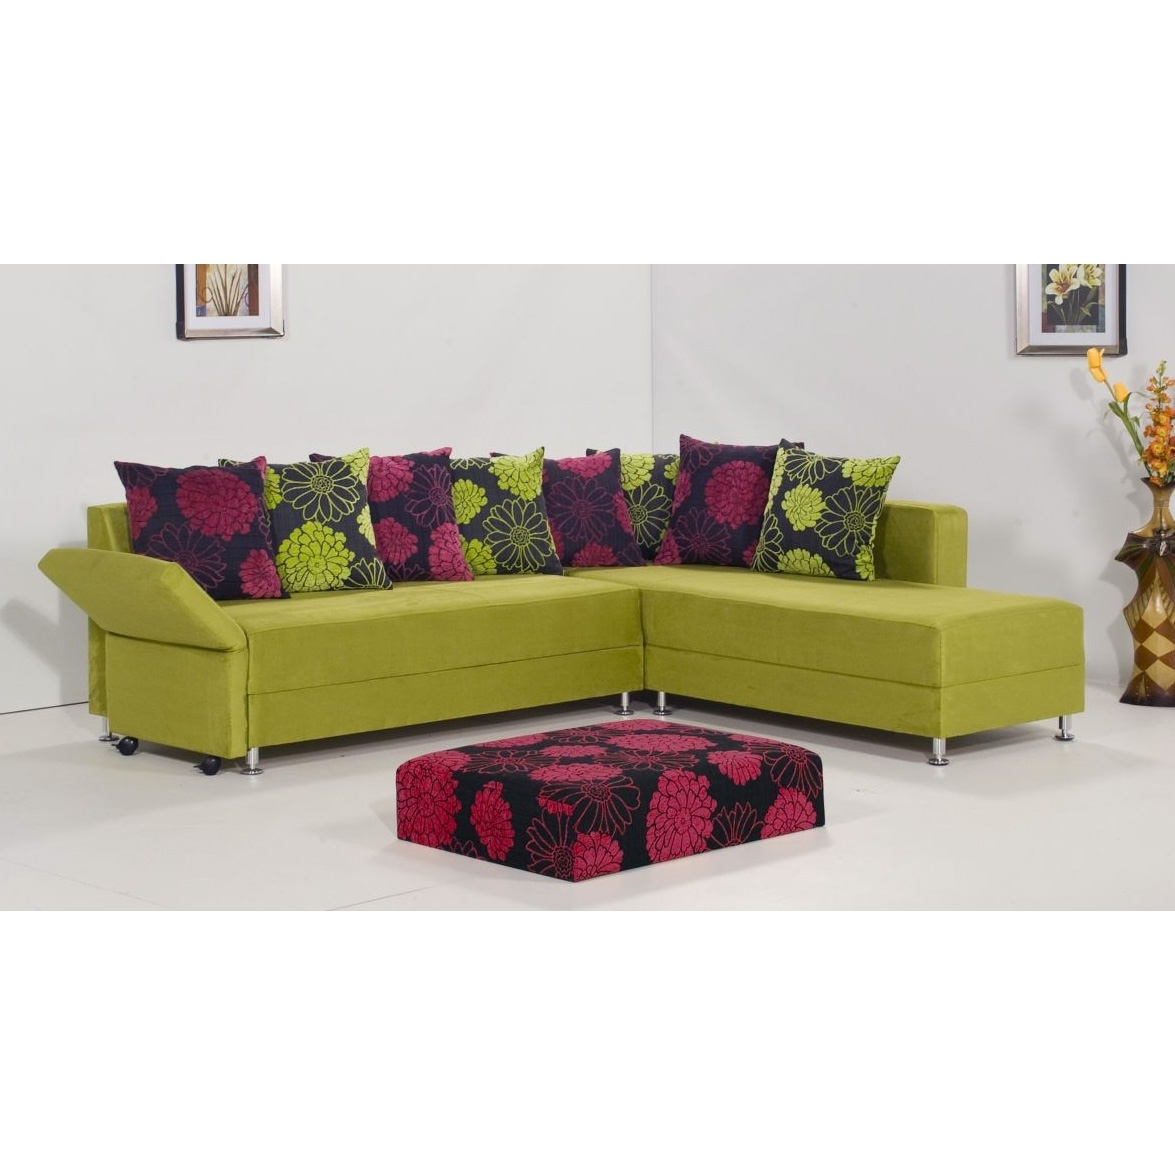 Living Room Sofa Green Leather Sectional Modern | Aksitarih Intended For Green Sectional Sofas (View 7 of 10)